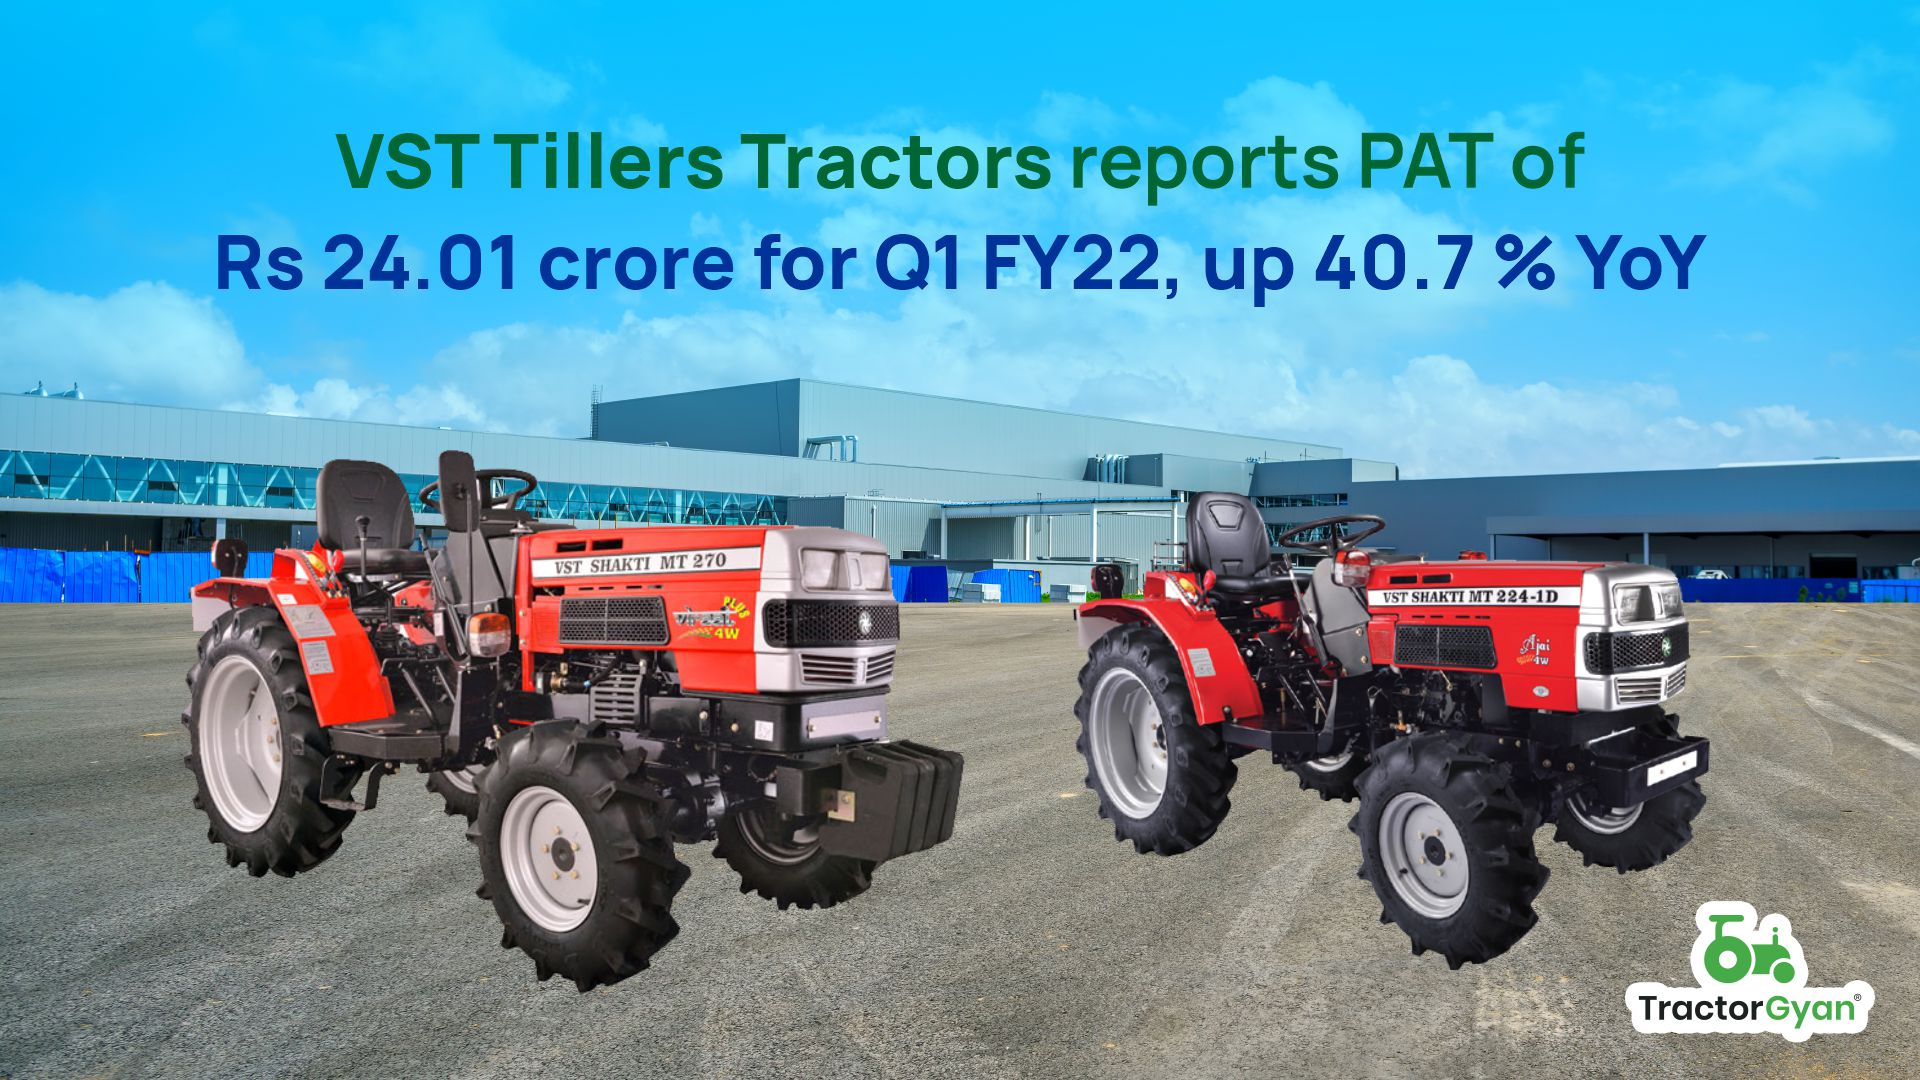 VST Tillers Tractors reports PAT of Rs 24.01 crore for Q1 FY22, YoY rise of 40.7 %.